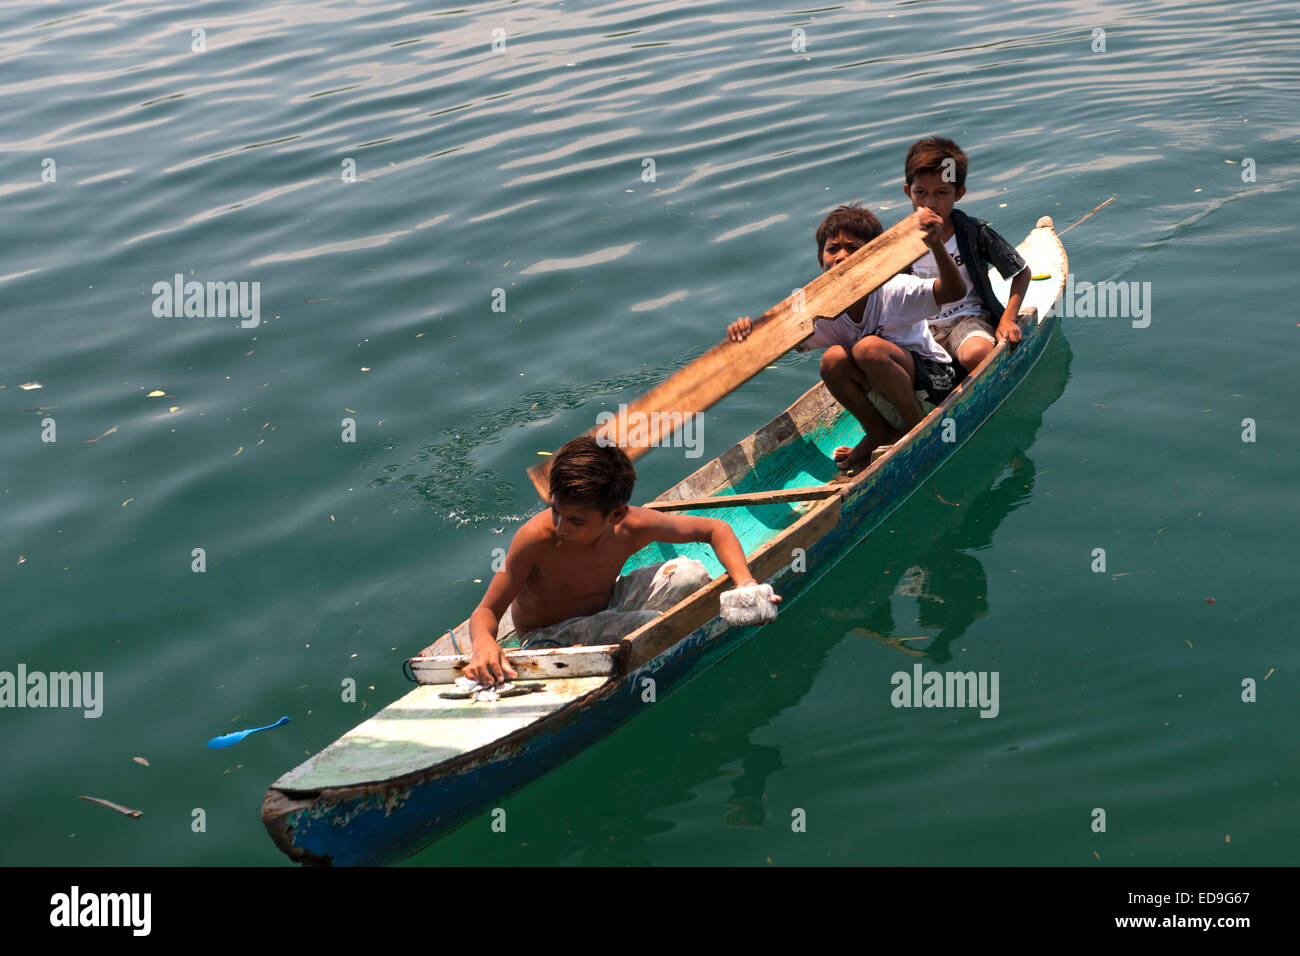 Indonesian children in a canoe in the waters of Wuring fishing village near Maumere on Flores island, Indonesia. - Stock Image